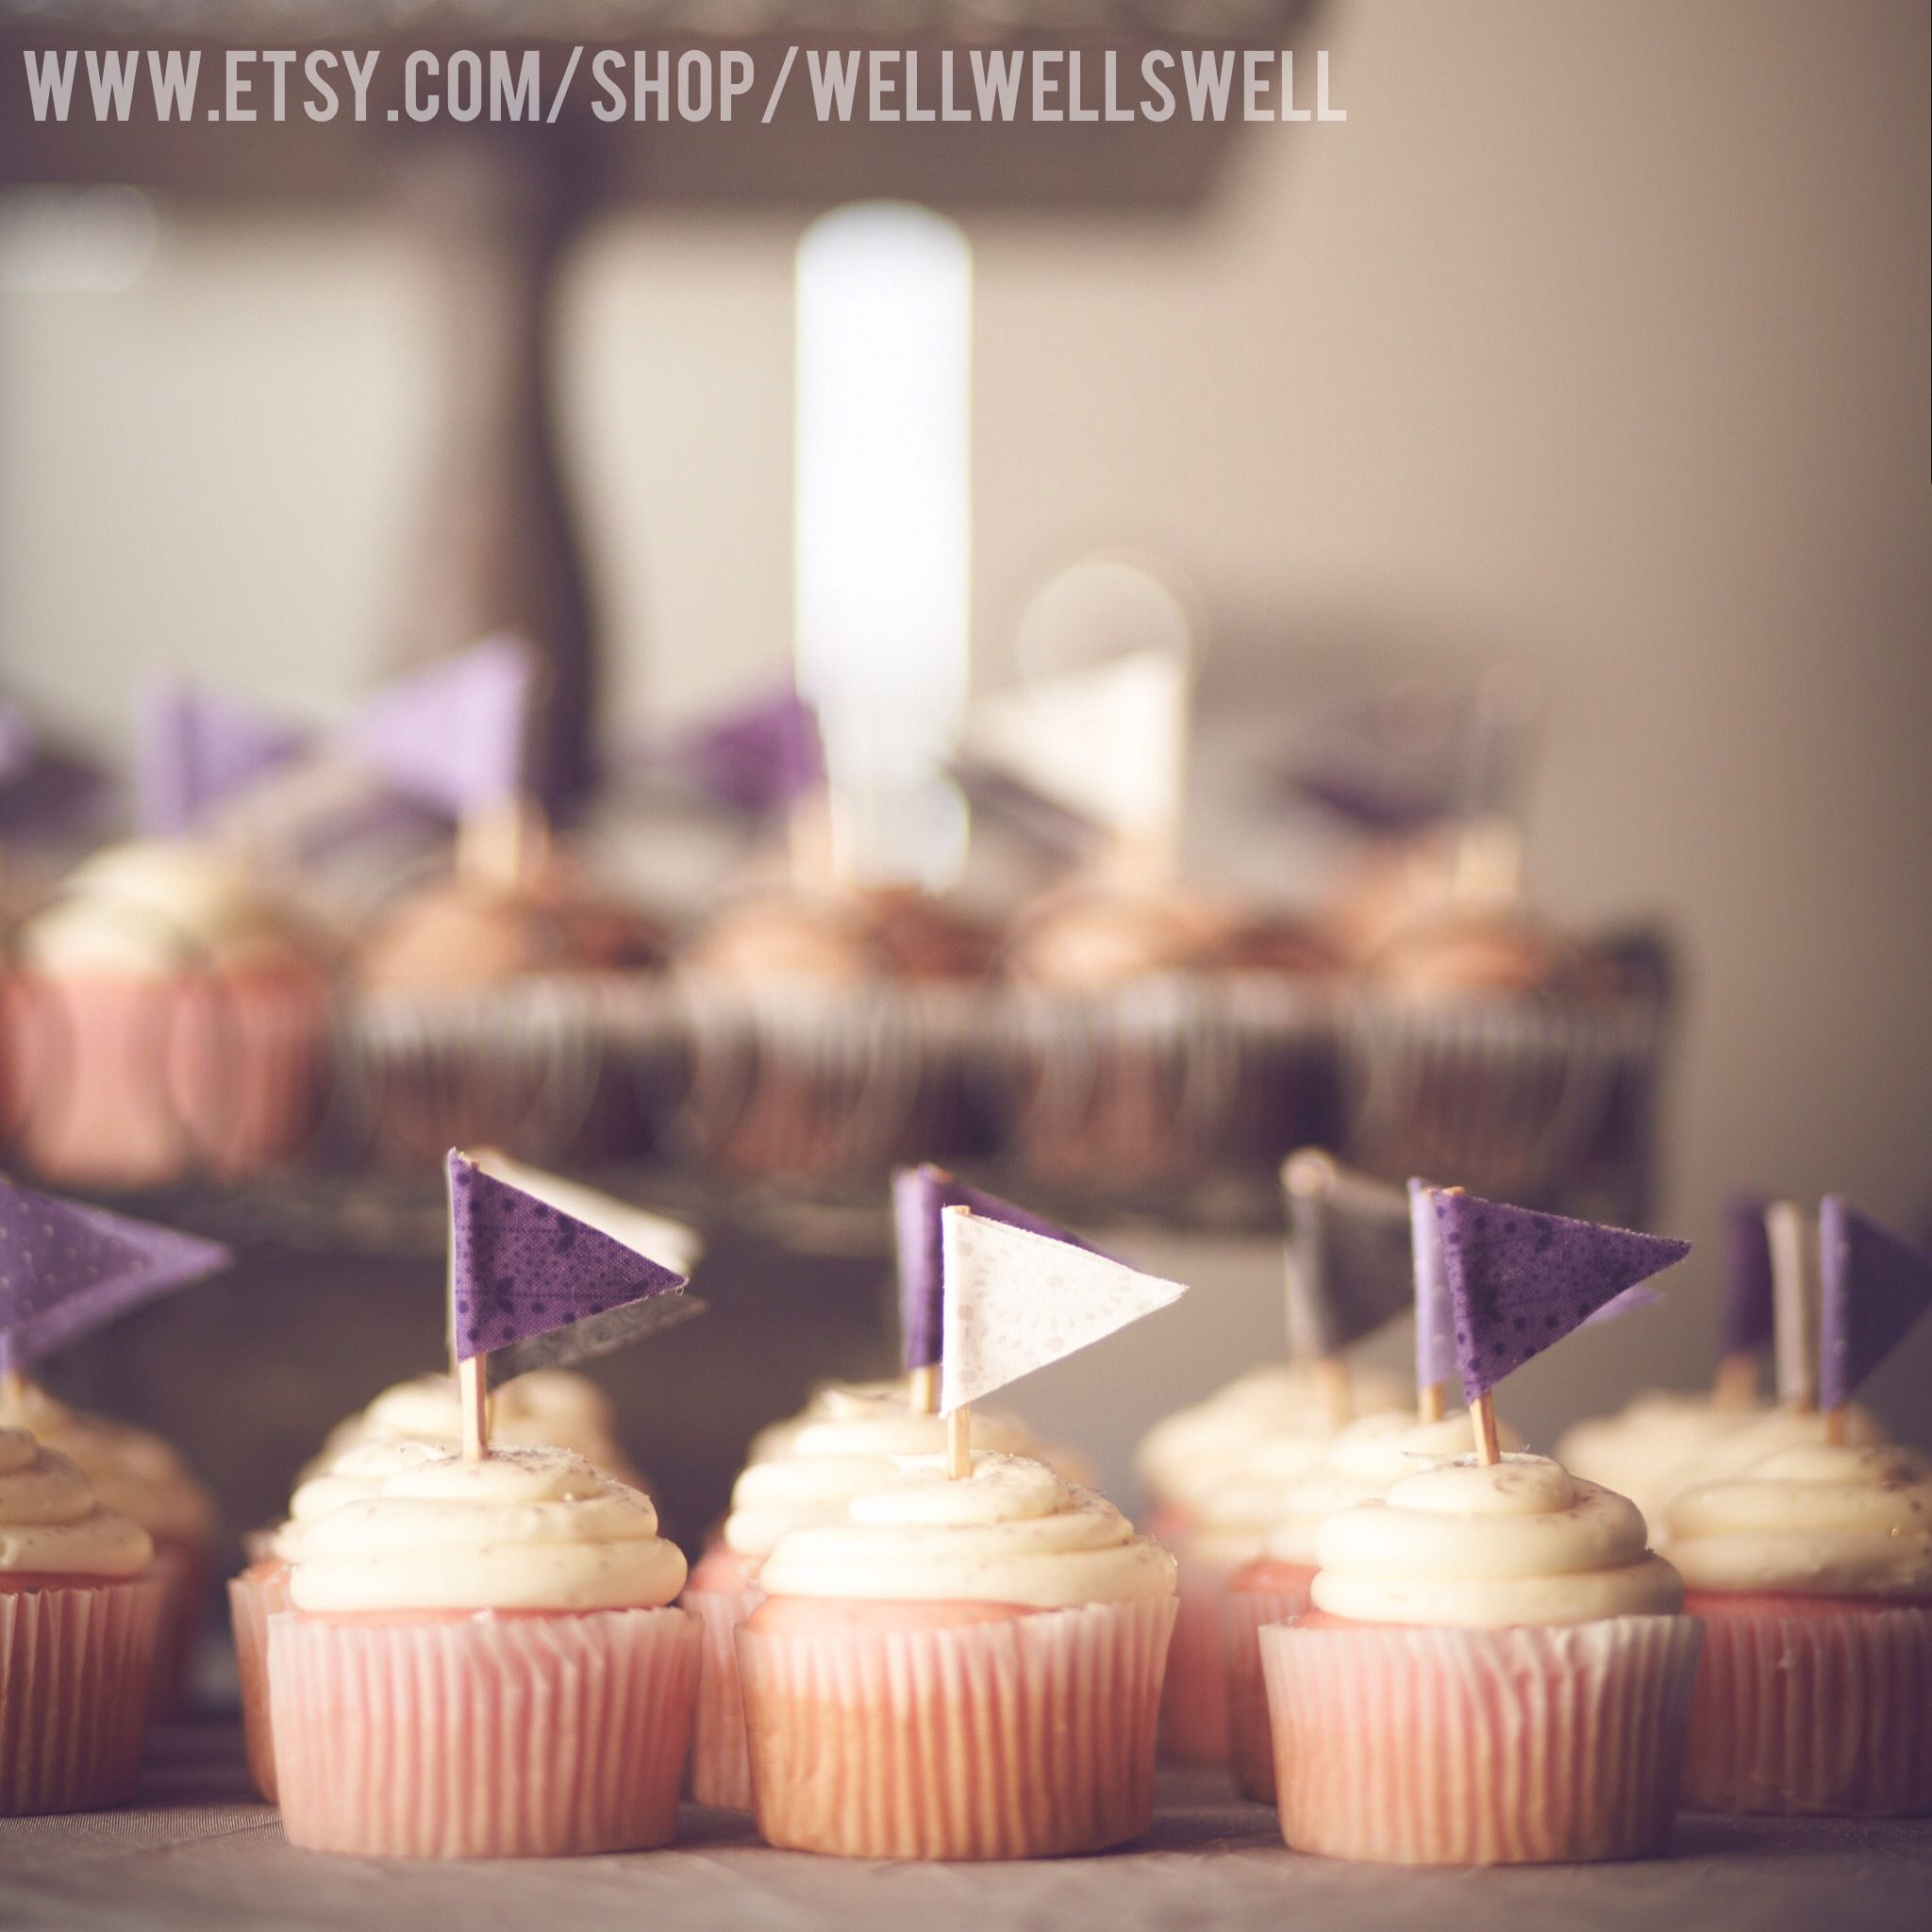 Cupcake flags.  Hand made.  Wedding decor. www.etsy.com/shop/WellWellSwell  #etsy #cupcakeflags #weddingdecor #wedding #rusticwedding #cuteweddingdecor #weddingstyle